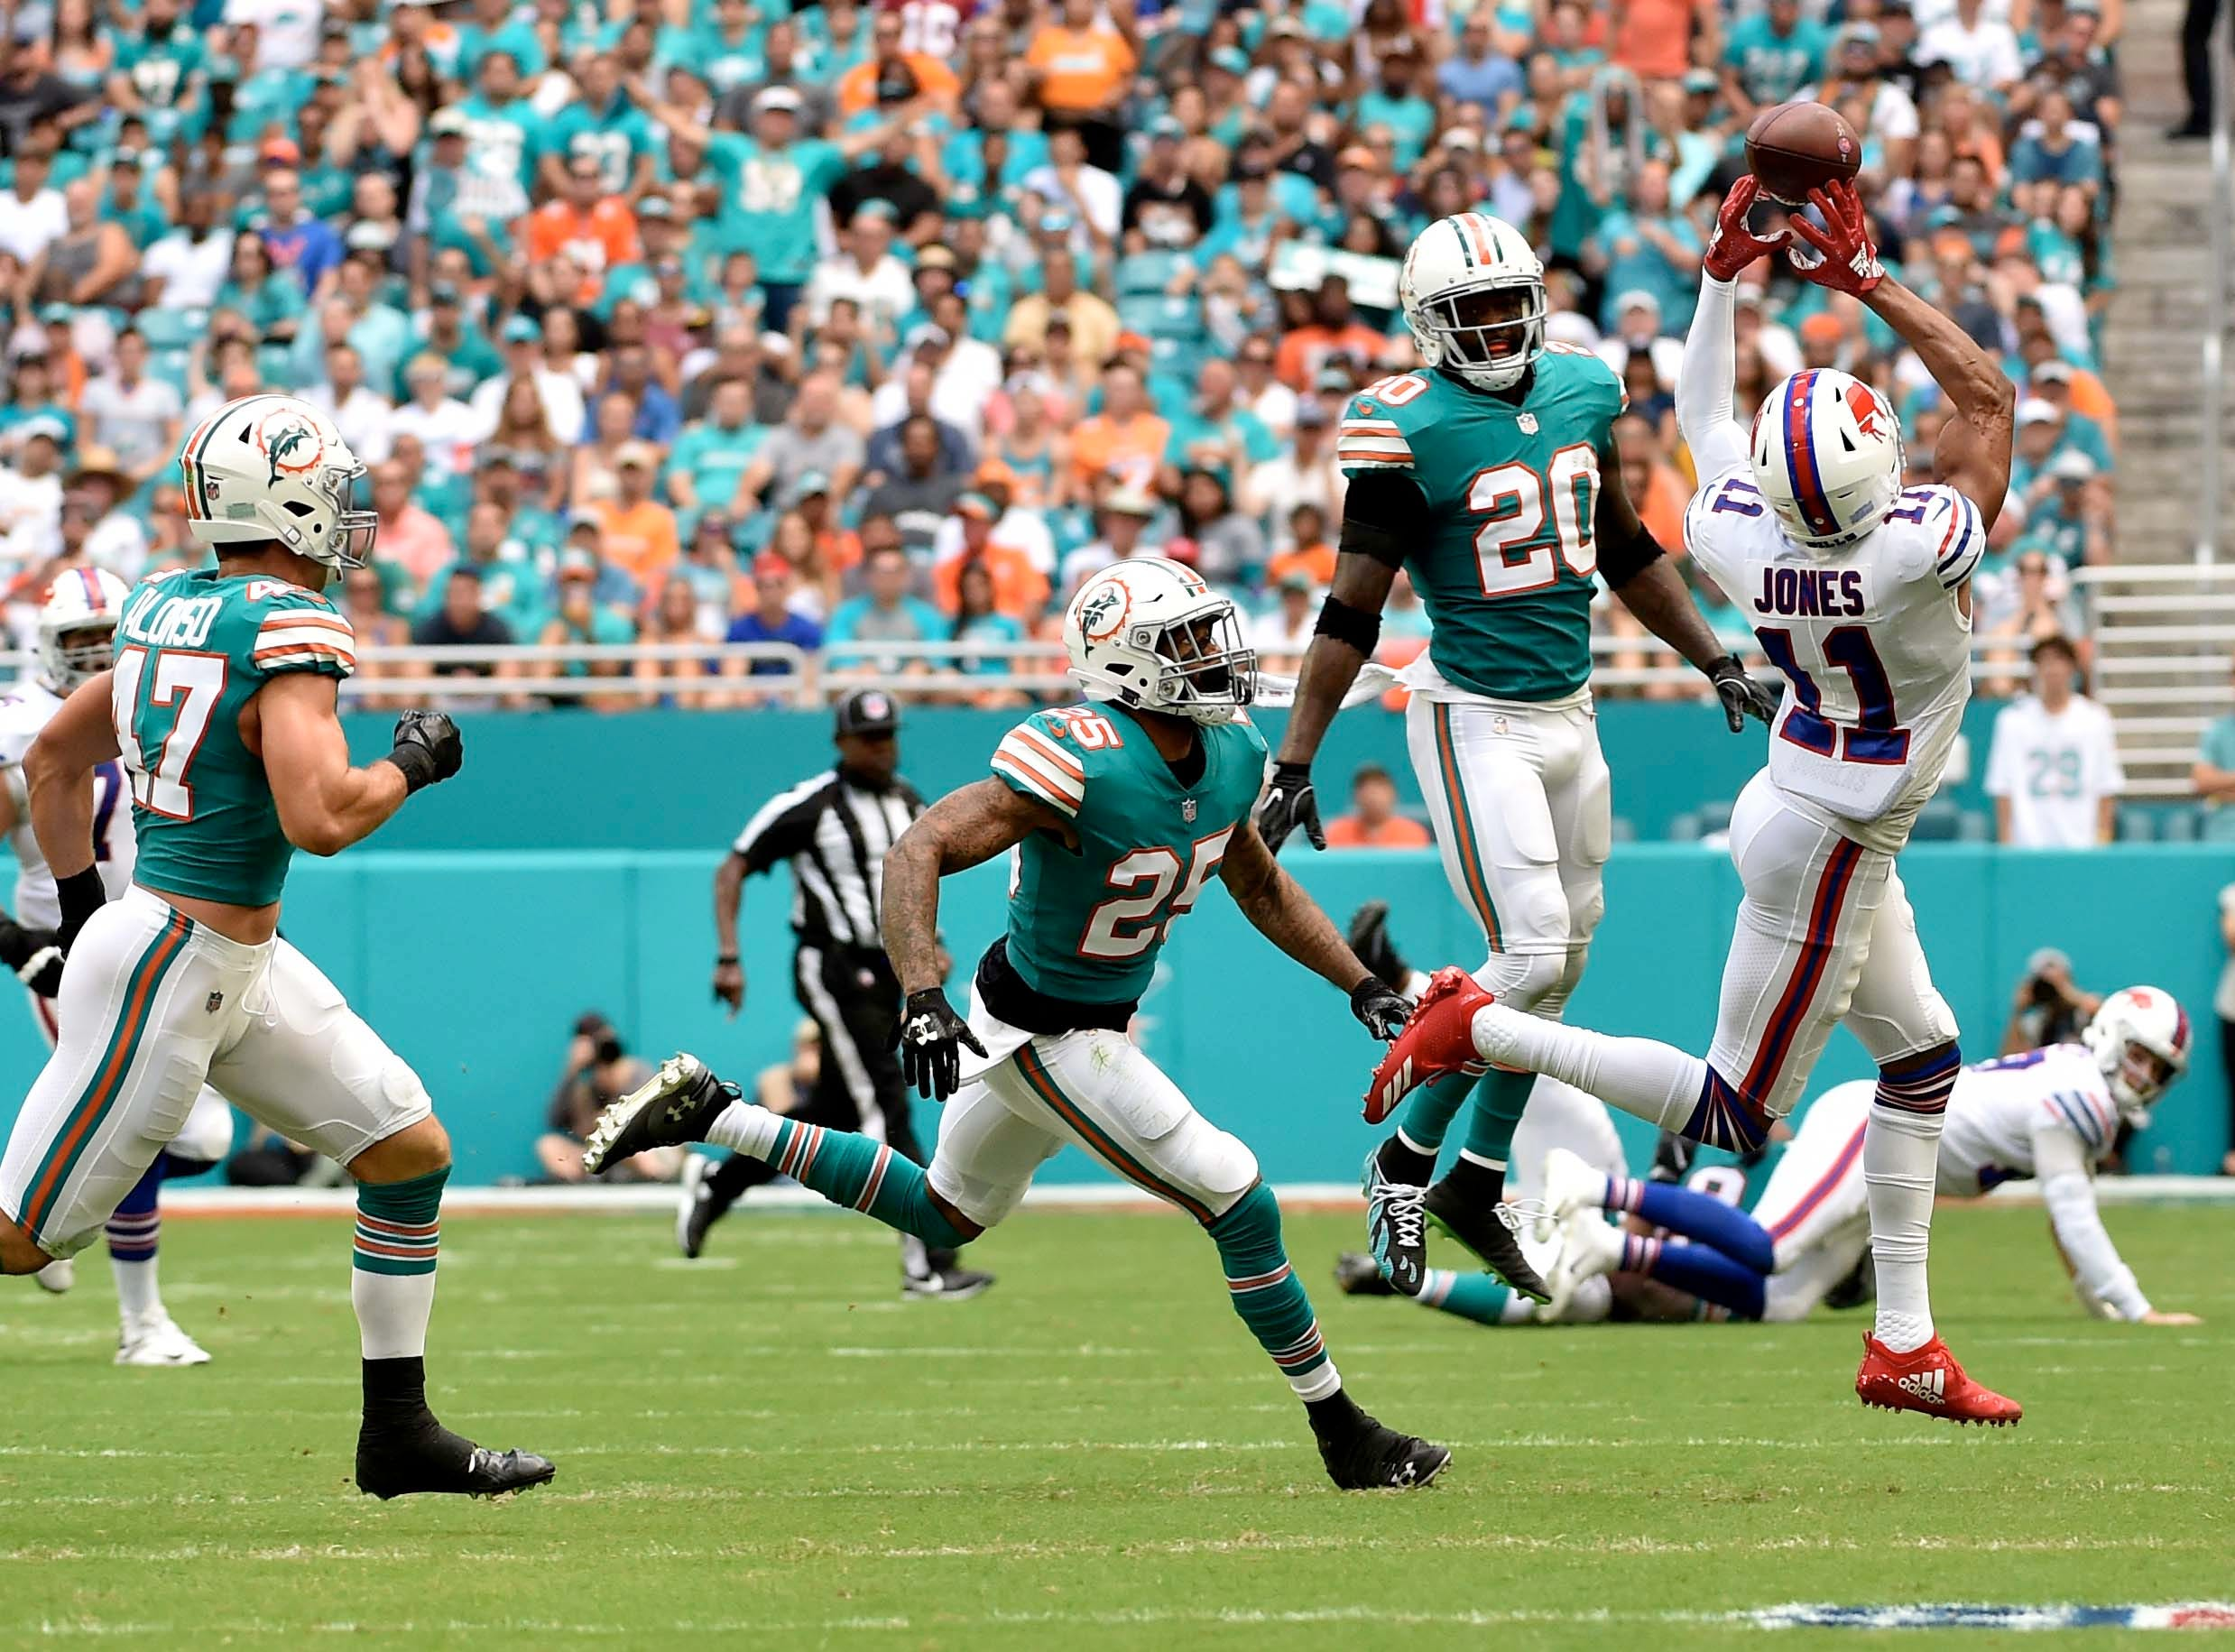 Dec 2, 2018; Miami Gardens, FL, USA; Buffalo Bills wide receiver Zay Jones (11) is unable to make a catch as Miami Dolphins free safety Reshad Jones (20) looks on during the first half at Hard Rock Stadium. Mandatory Credit: Steve Mitchell-USA TODAY Sports